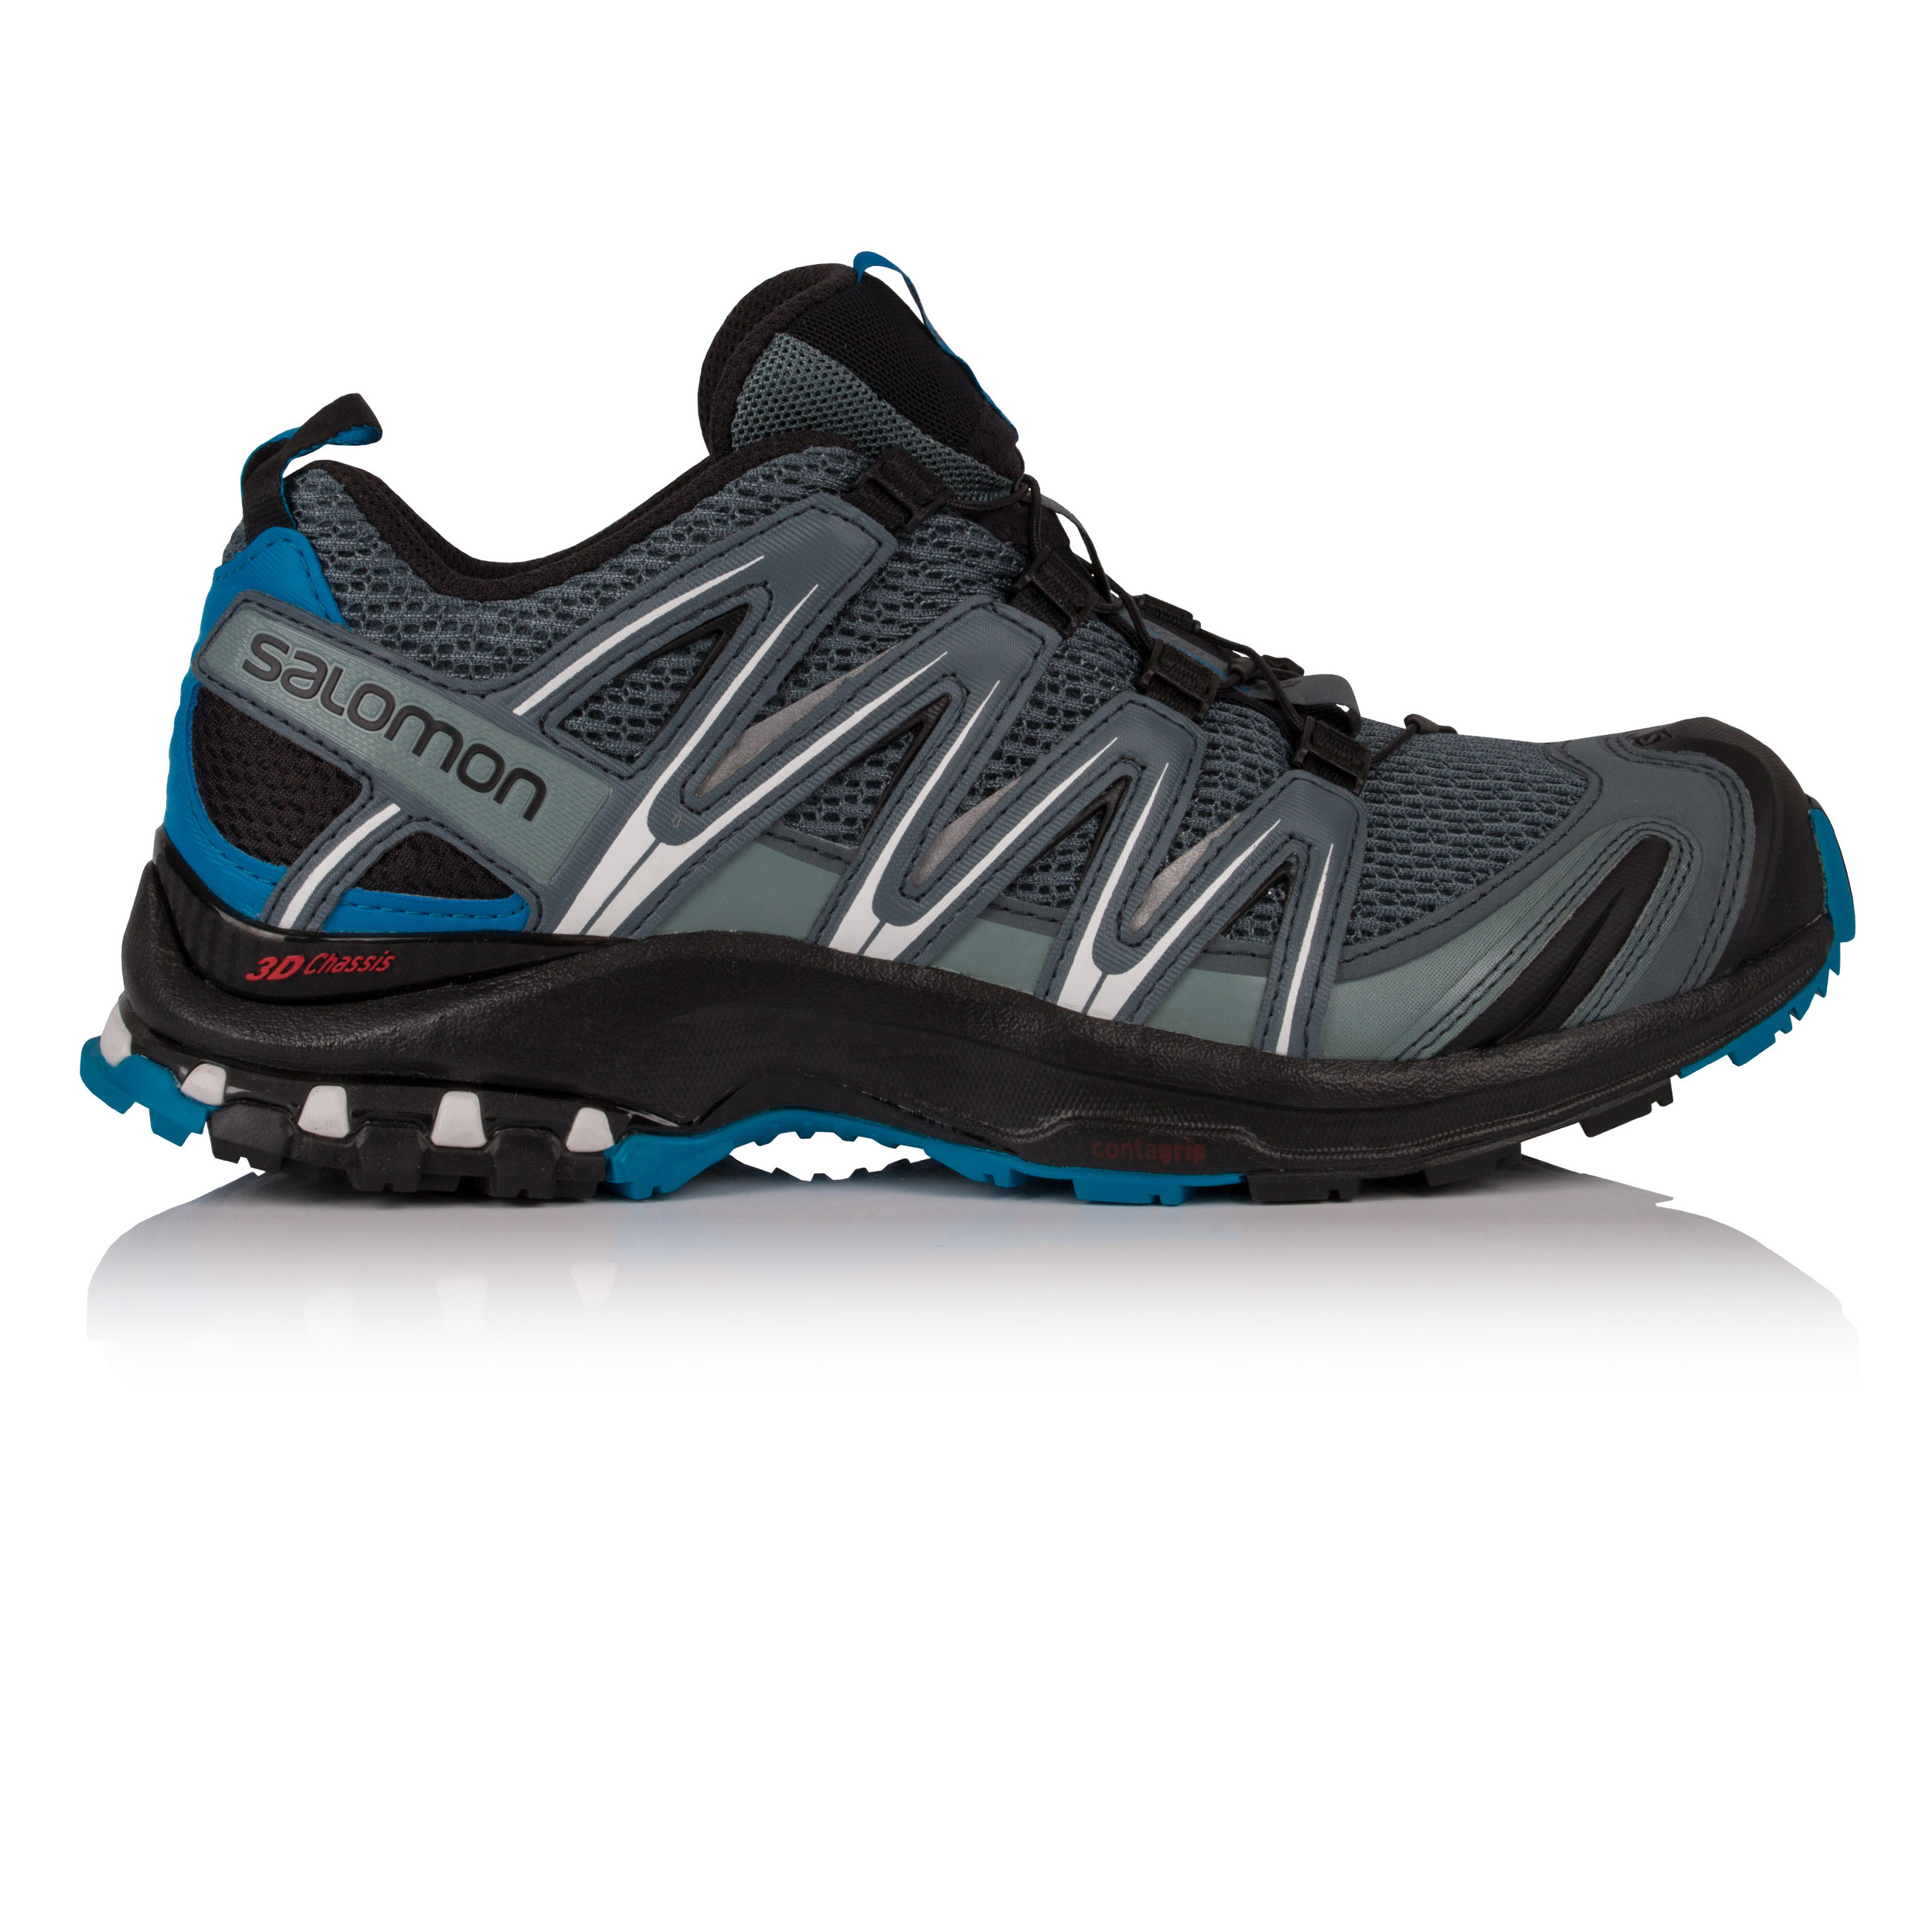 0dff3f76ddc5e Details about Salomon Mens XA PRO 3D Trail Running Shoes Trainers Sneakers  Grey Sports